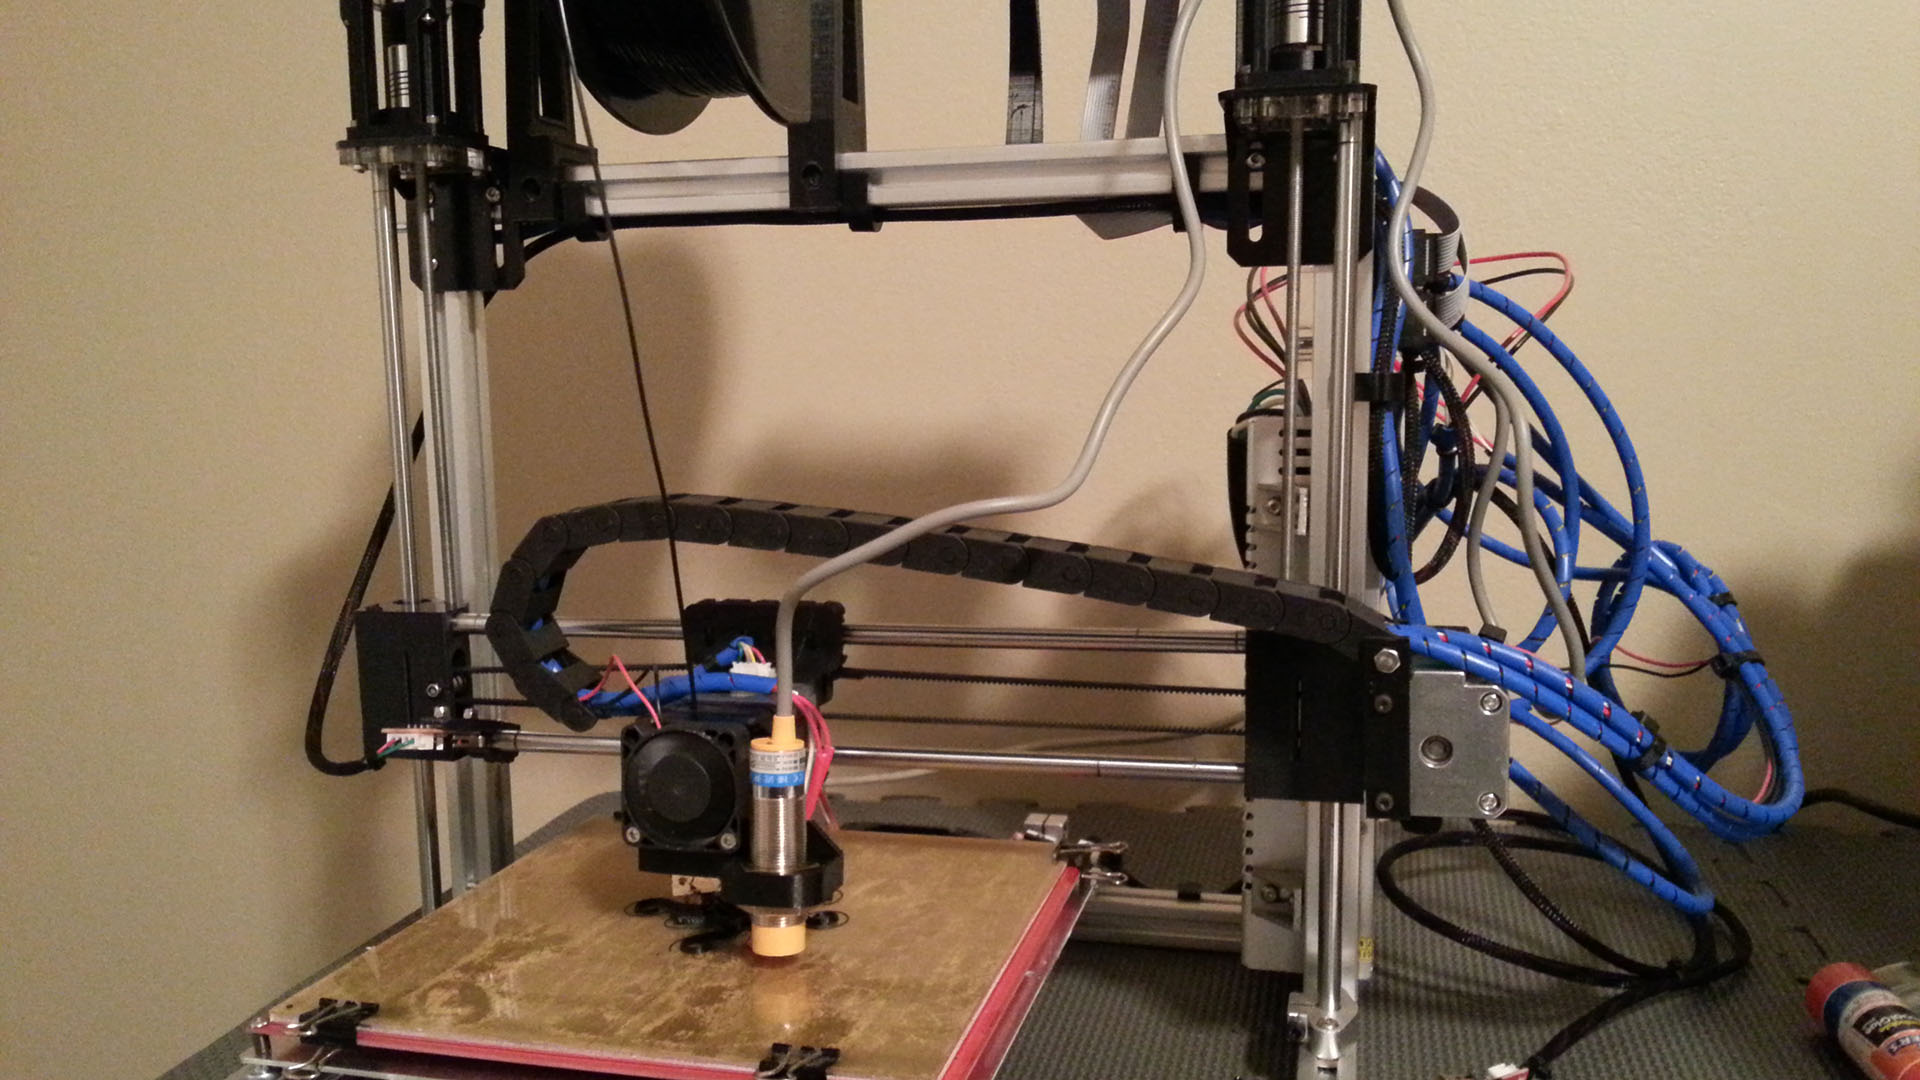 Testing The Folger Tech 2020 I3 3d Printer Tested Camt Launching Firstever For Printed Circuit Board There Is An Absolutely Massive Thread On Reprap Forums Which Contain A Huge Amount Of Information And Fixes As This Writing At 88